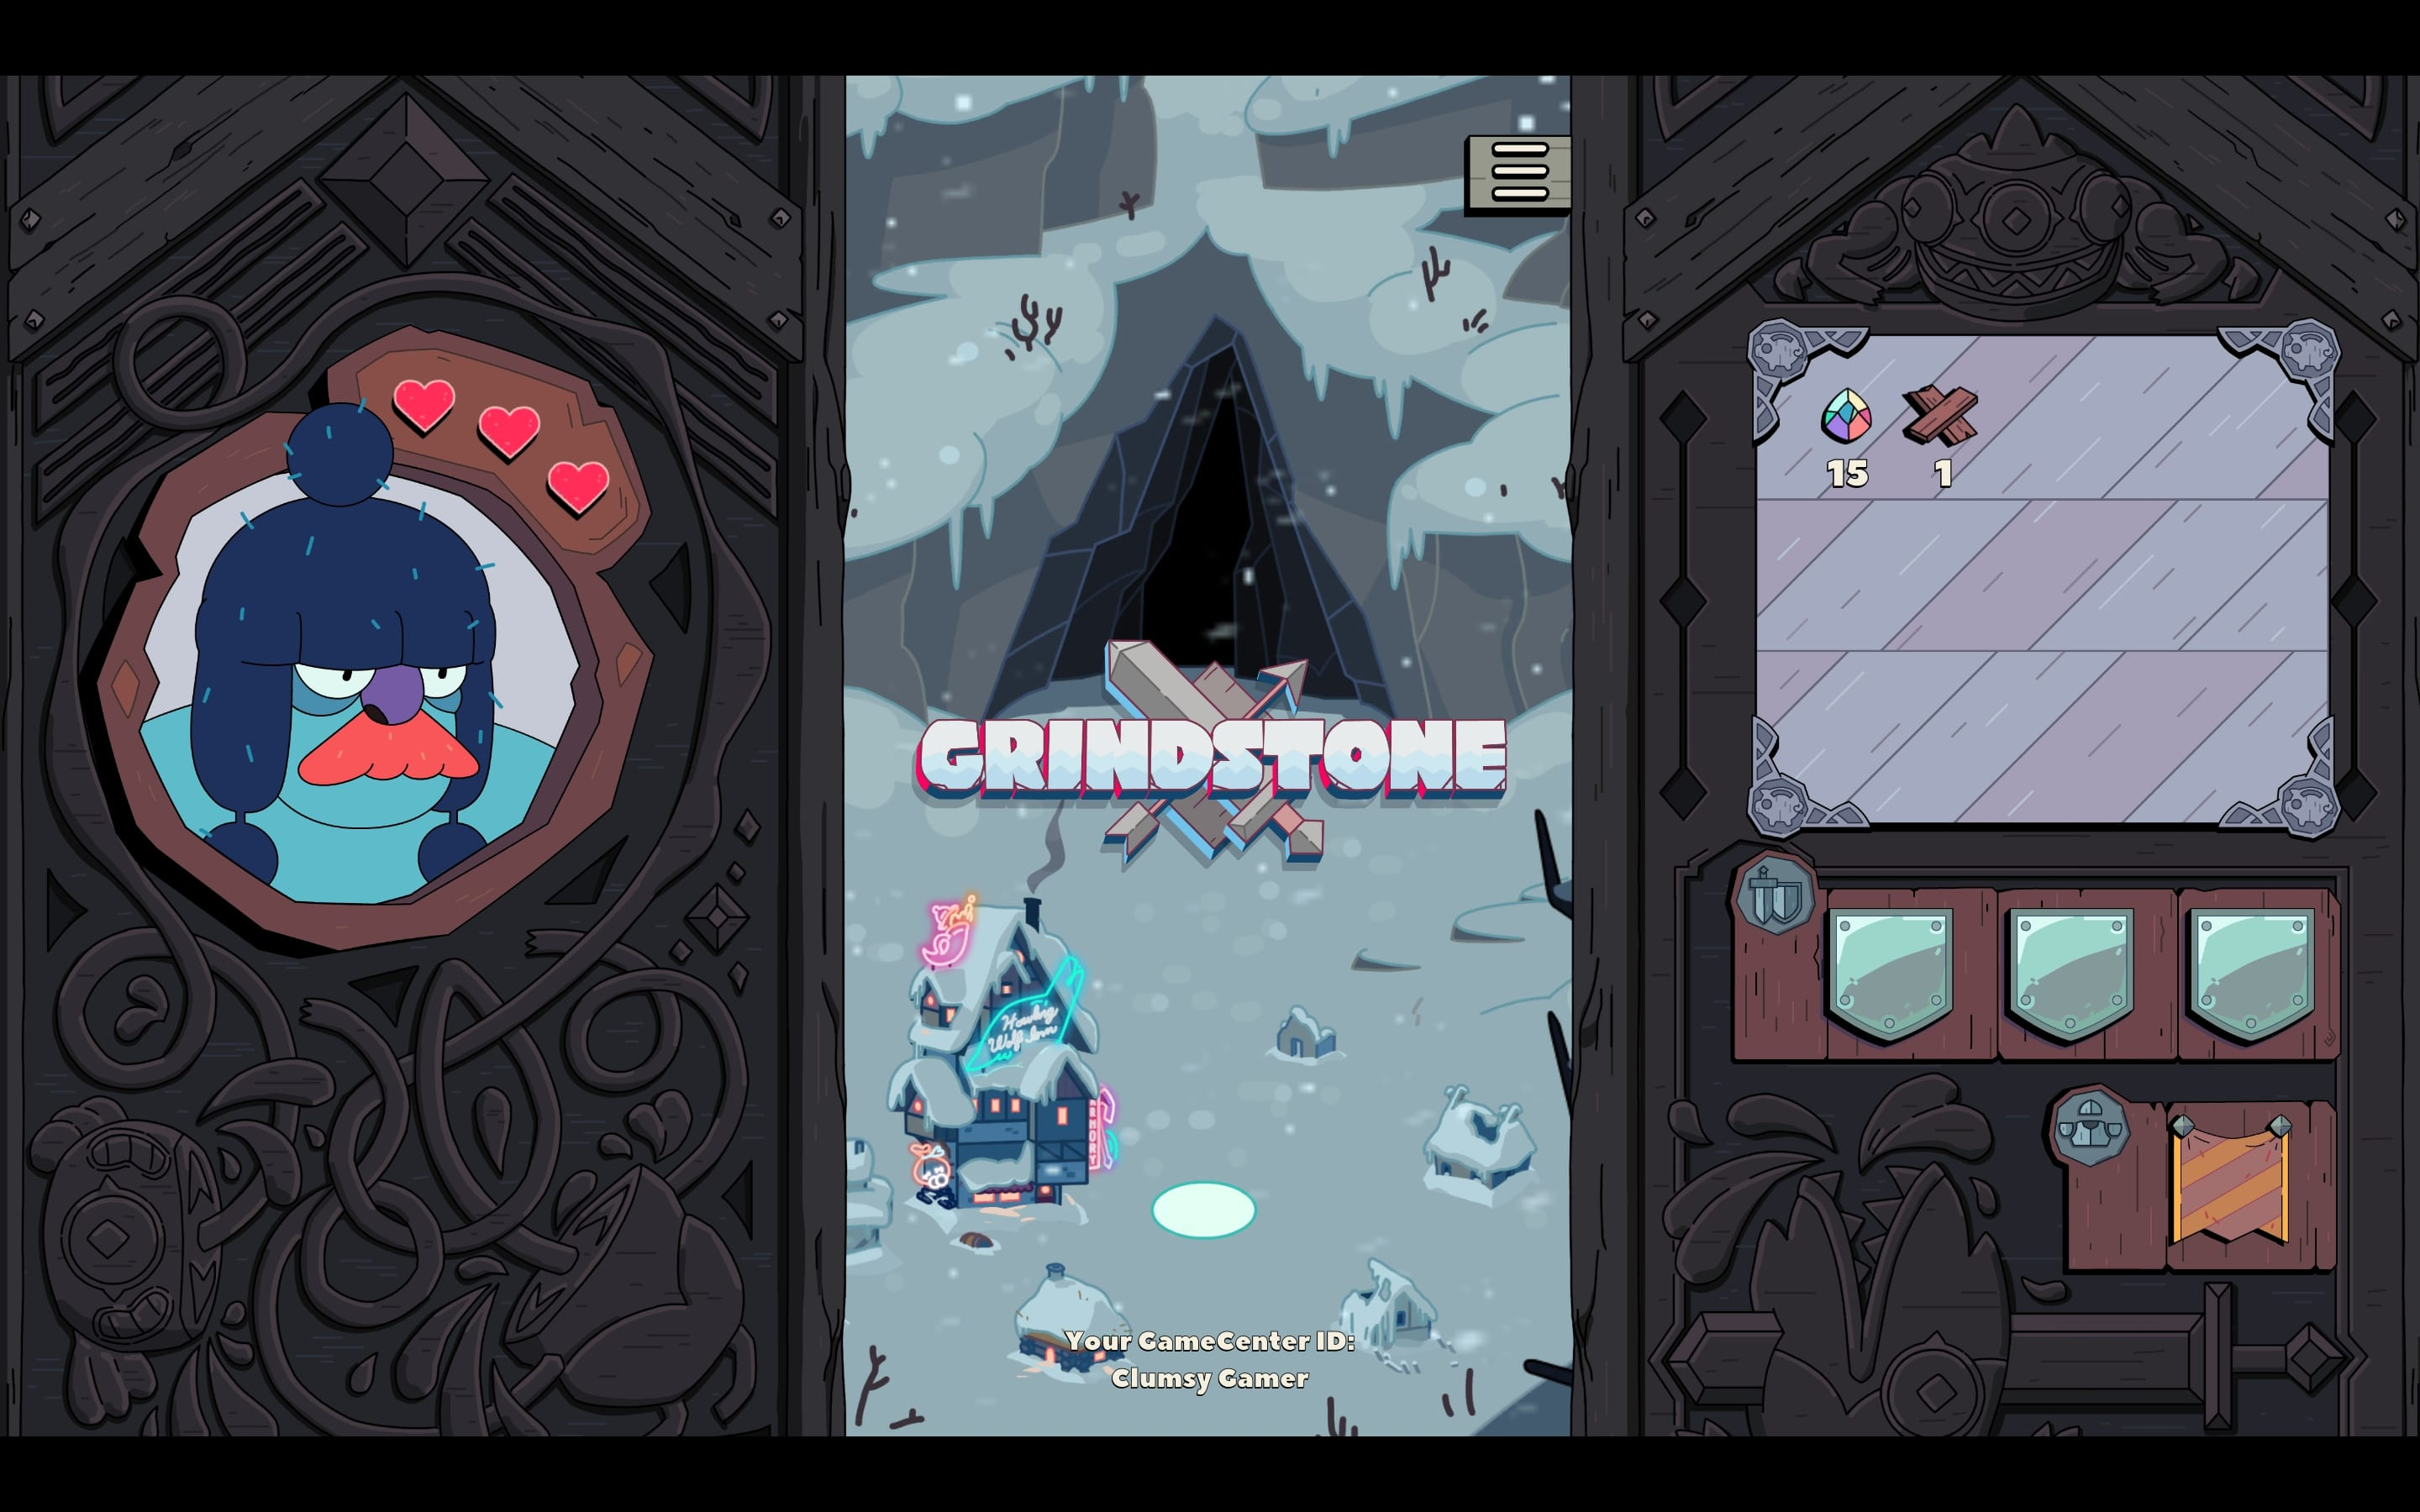 Grindstone main screen